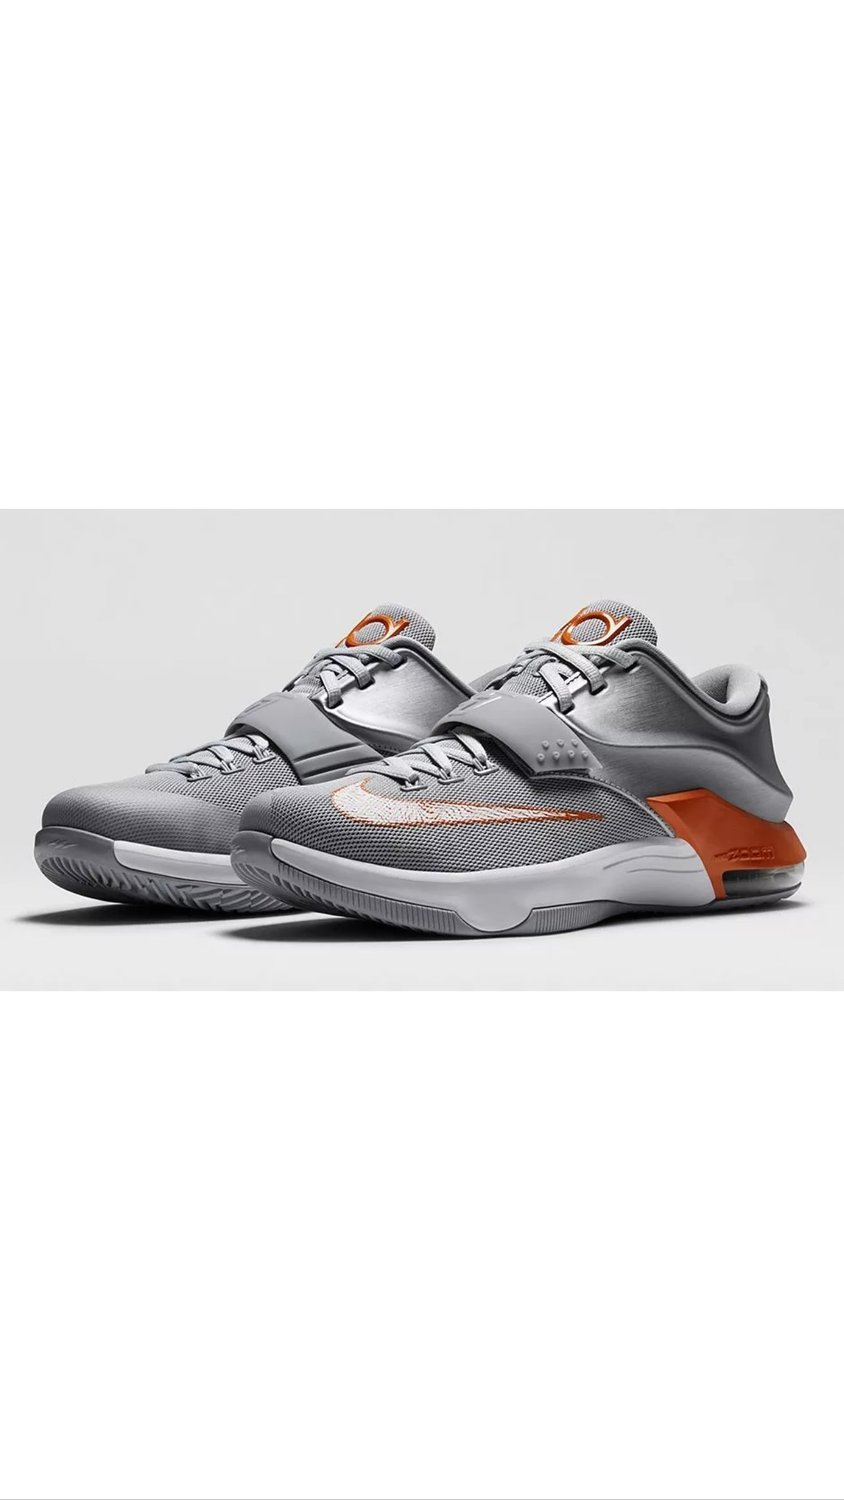 best sneakers d2e2d e8962 Get Quotations · Nike KD VII Texas Silver Burnt Orange Wolf Grey sz 6Y Youth